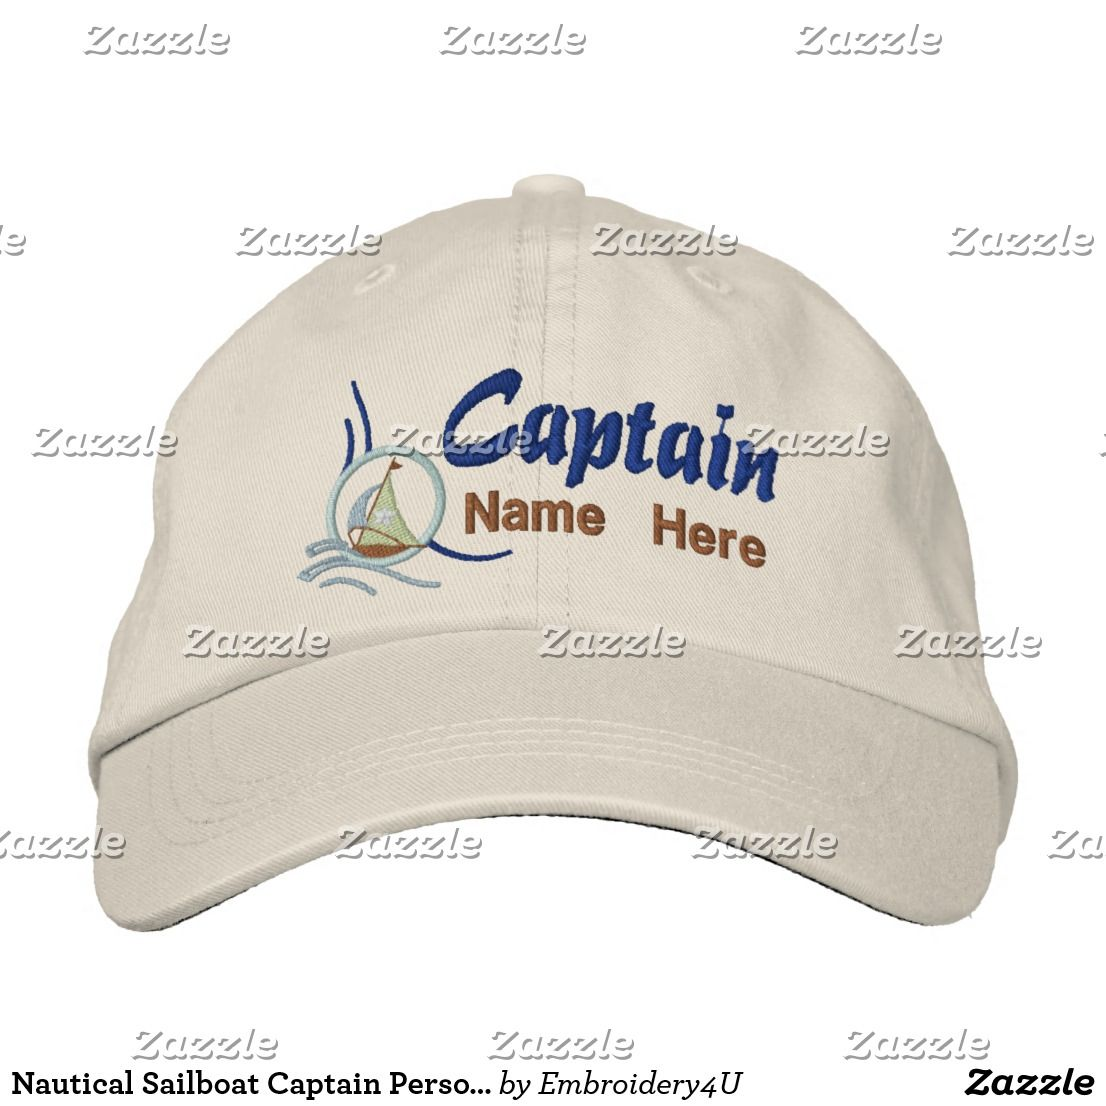 5b21e18c8a1be Nautical Sailboat Captain Personalized Embroidery Embroidered Baseball Cap